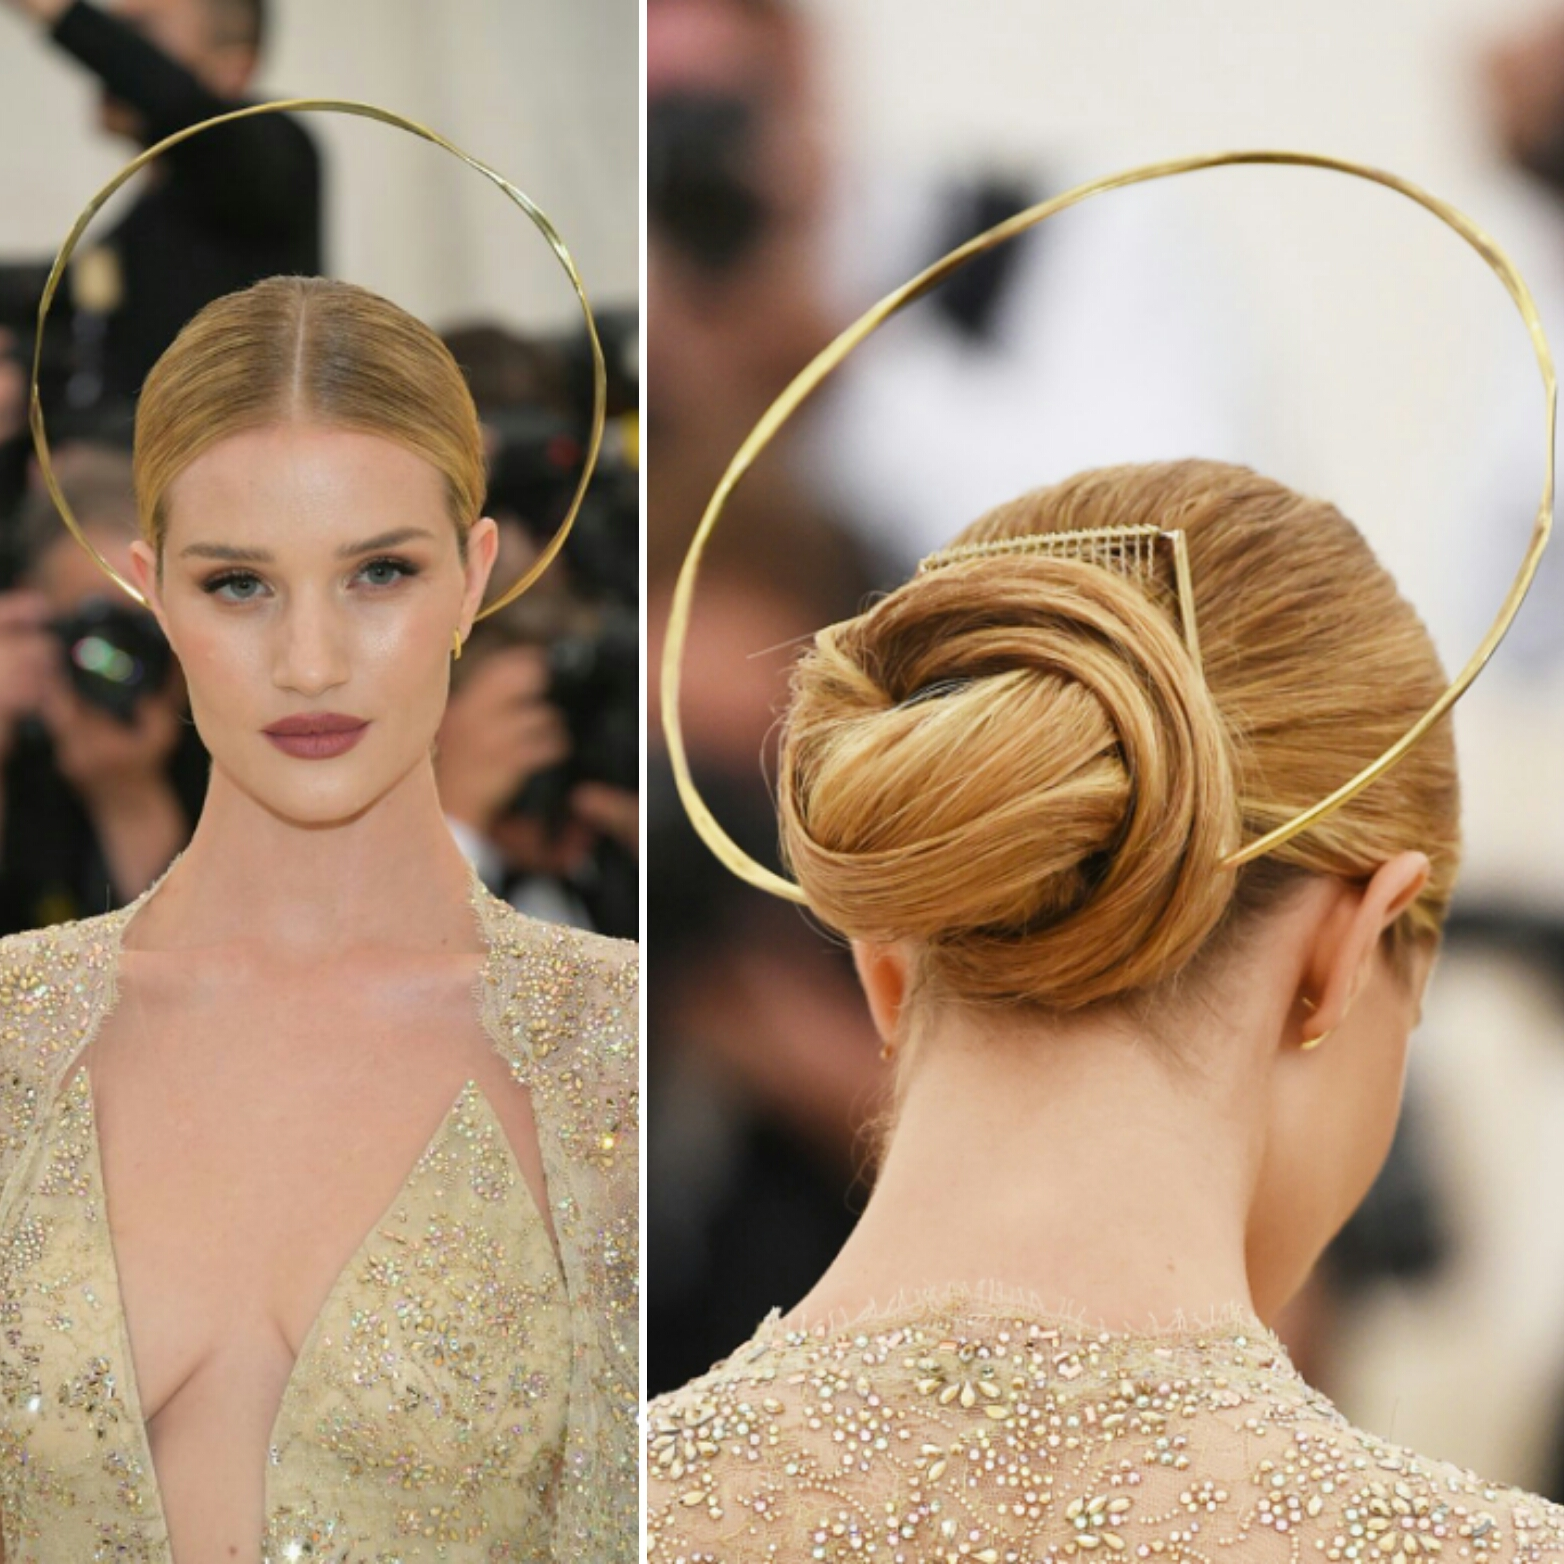 #RosieHuntingtonWhiteley #MetGala2018 #MetGala #MetGala2018Hair 5.23.04 pm.jpg